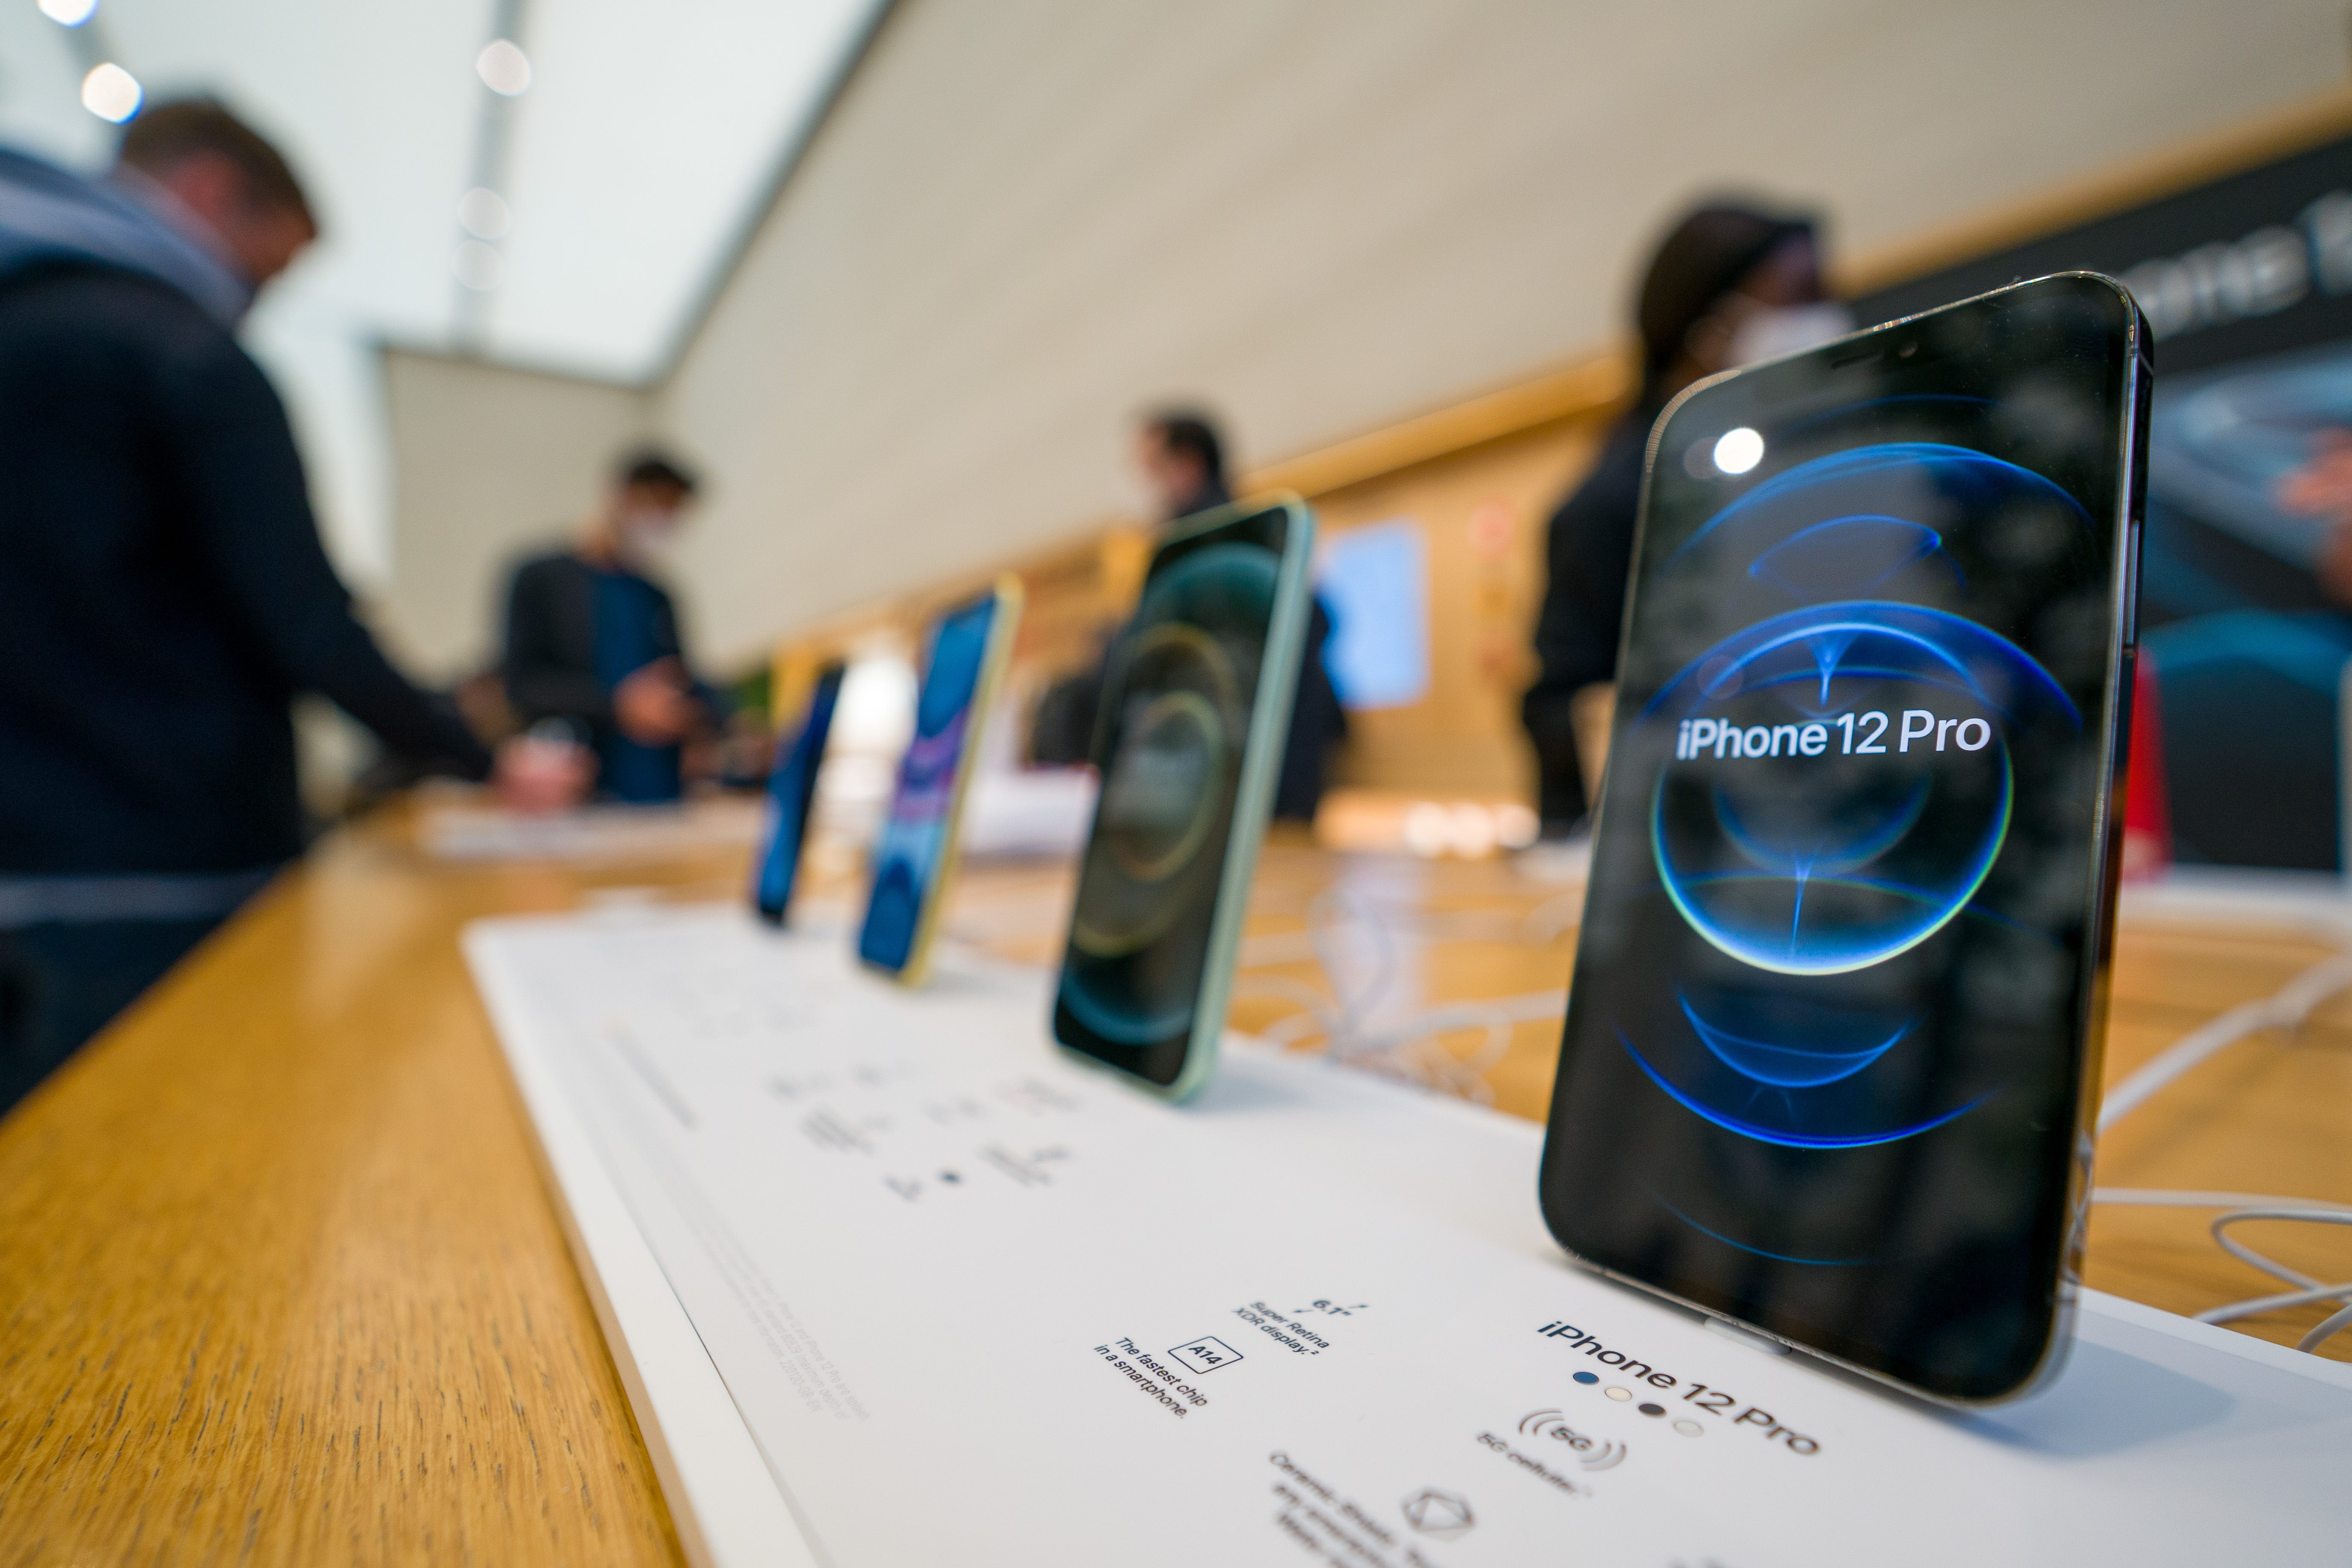 The new iPhone 12 and iPhone 12 Pro on display during launch day on October 23, 2020, in London, England. Apple's latest 5G smartphones go on sale in the UK today. The iPhone 12 Mini and iPhone 12 Pro Max will be available from November 13. (Ming Yeung/Getty Images/TNS)